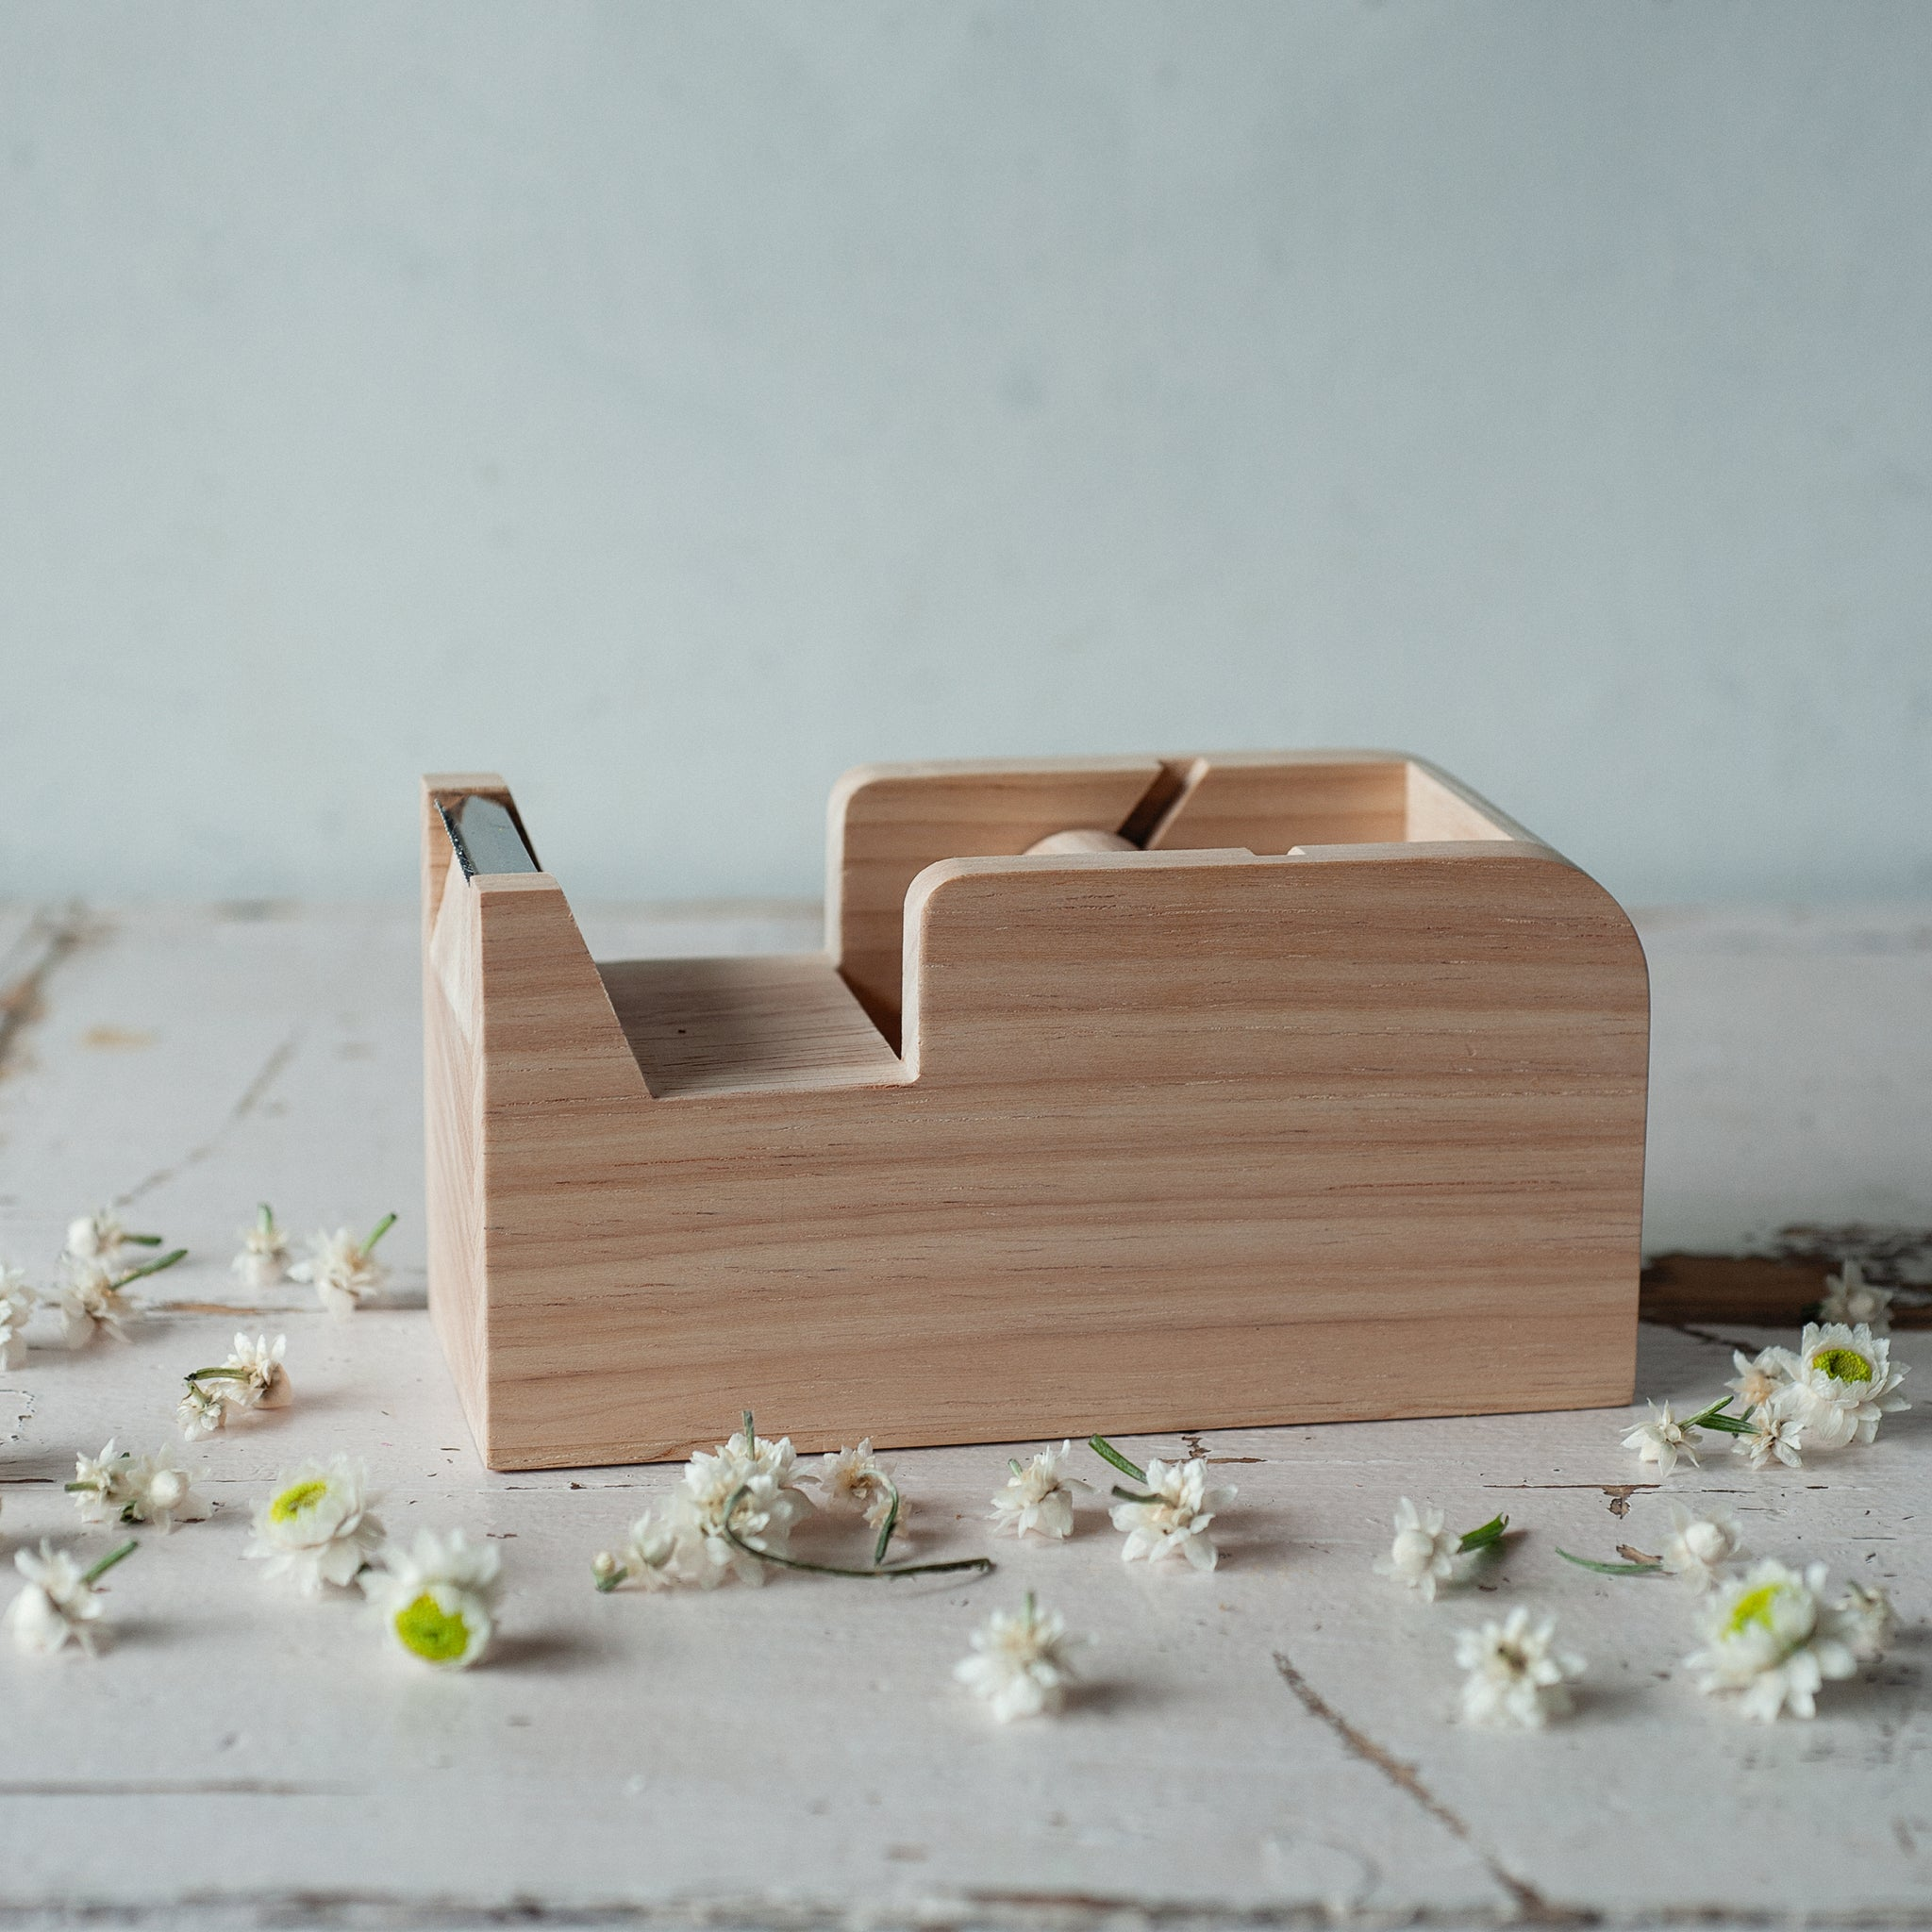 Bianca Lorenne Wooden Cellotape Dispenser